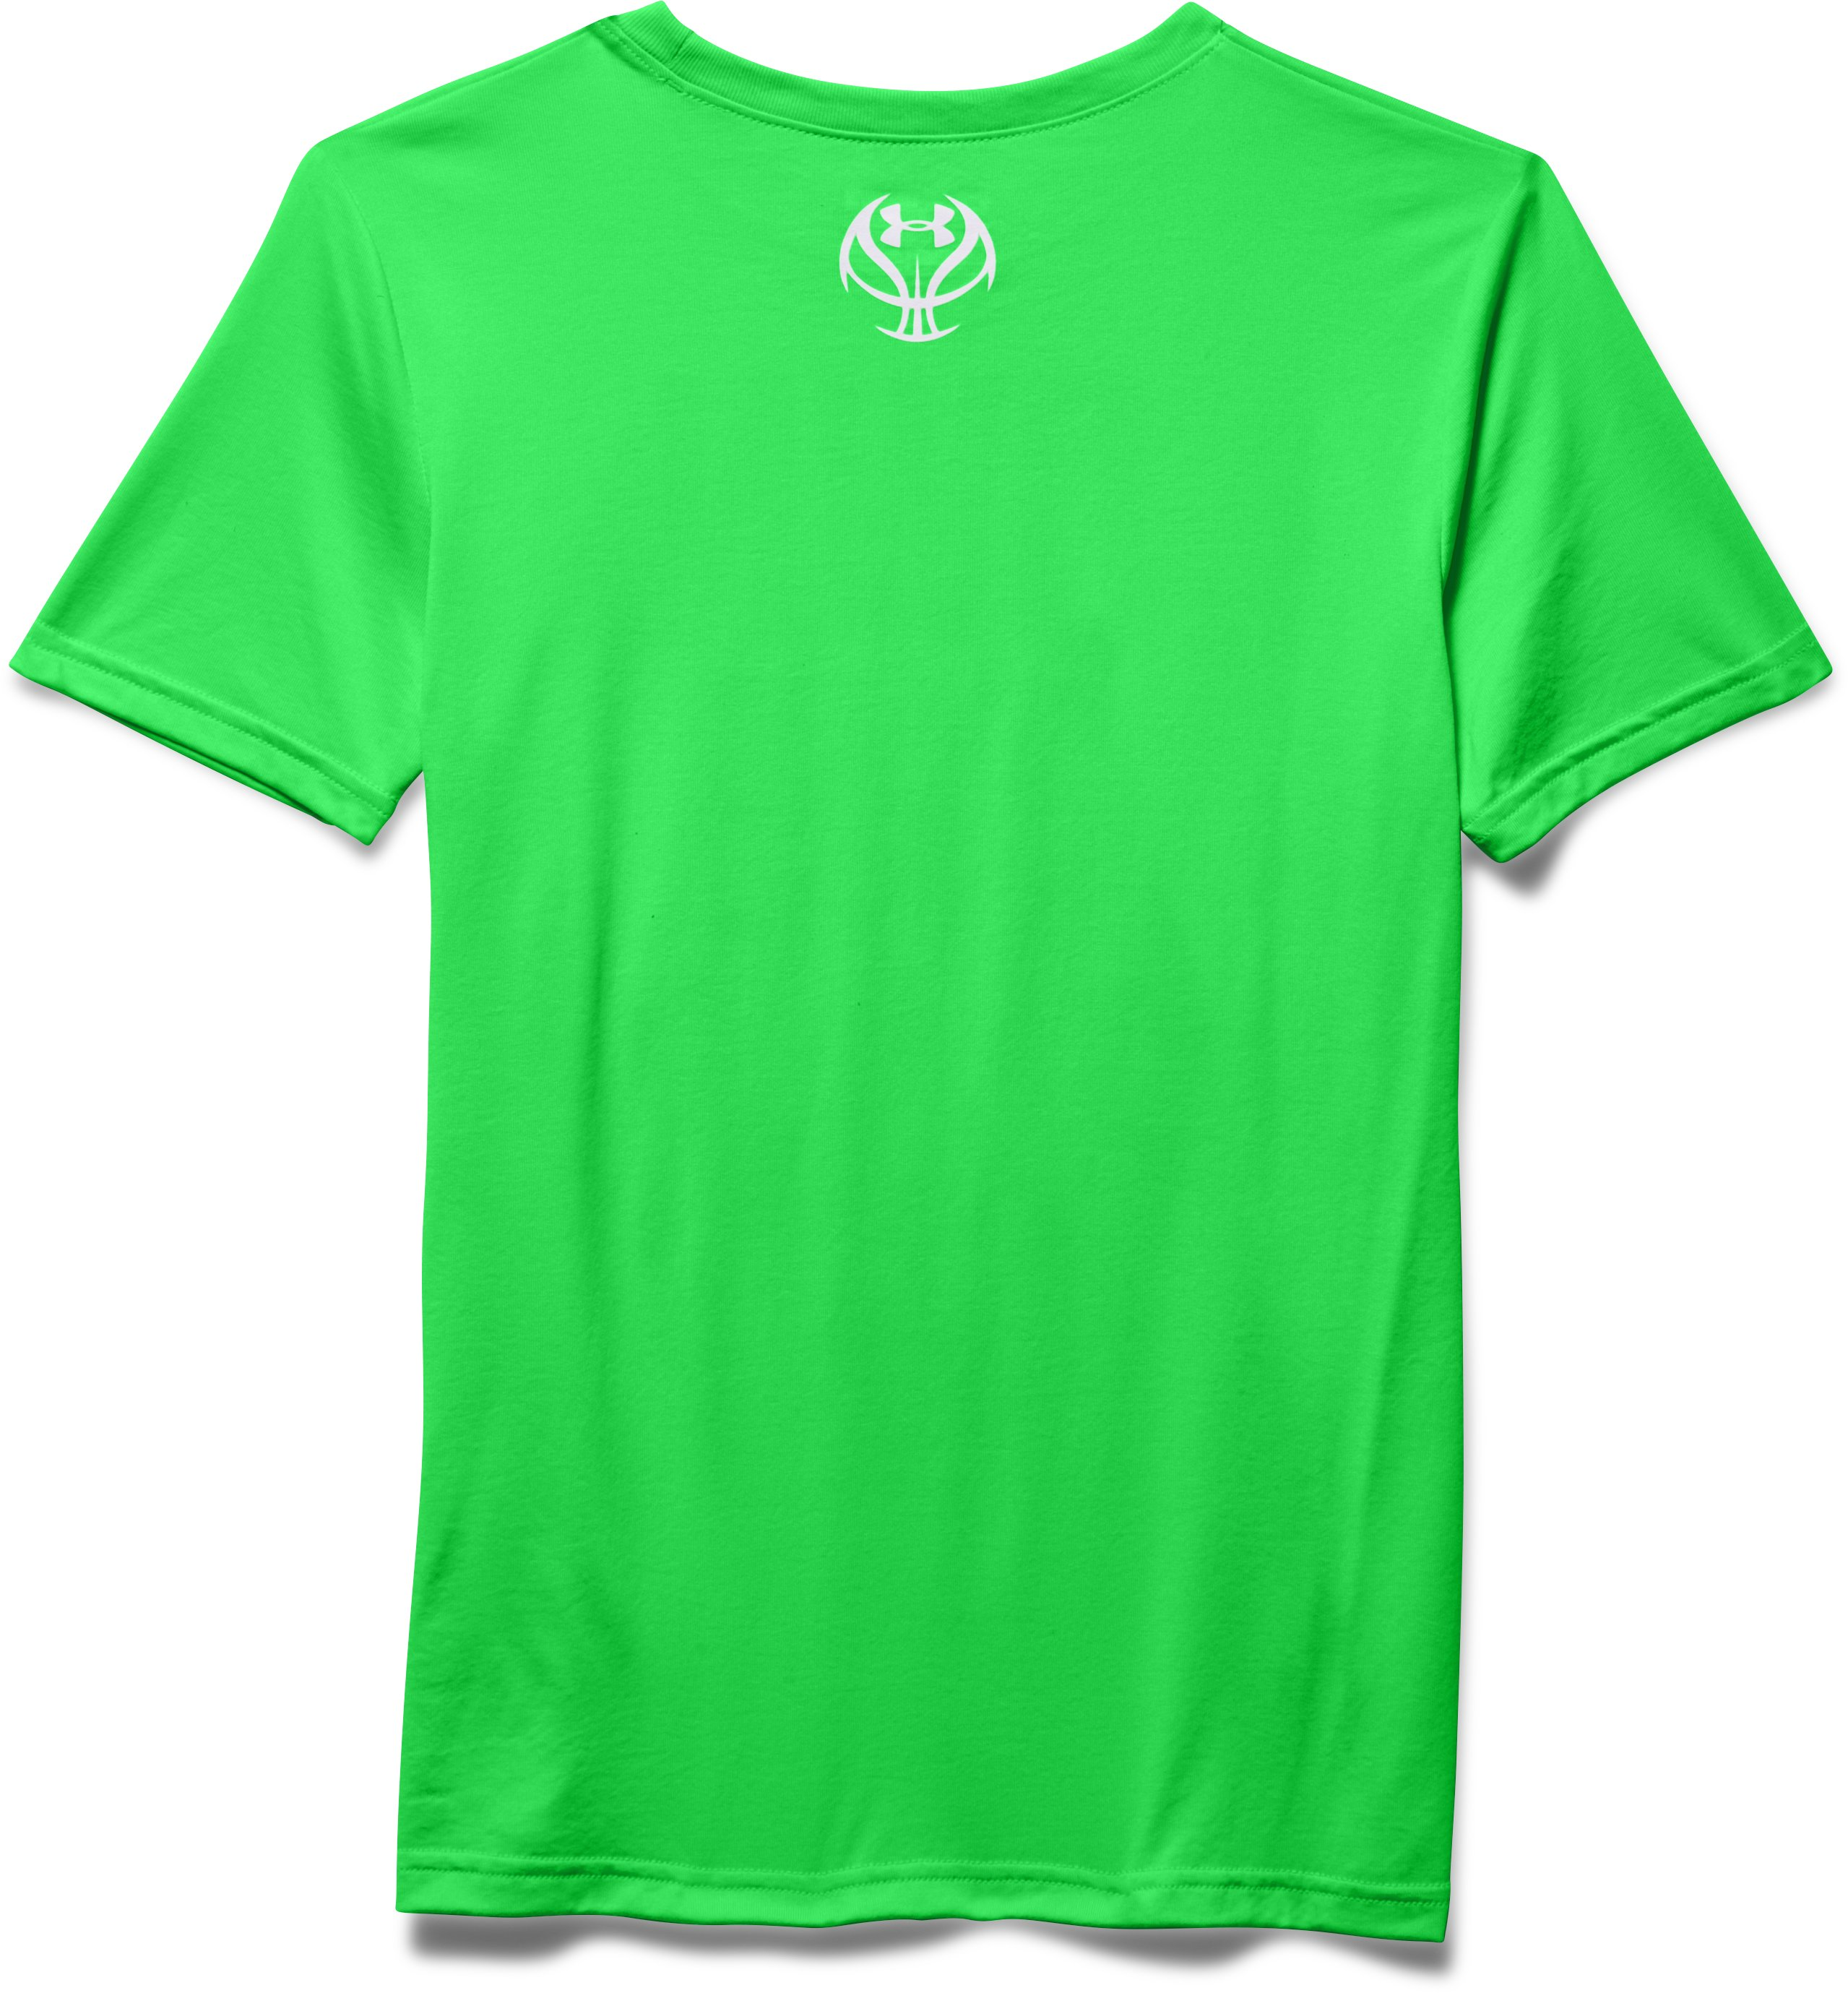 Find great deals on eBay for painting t shirt. Shop with confidence.